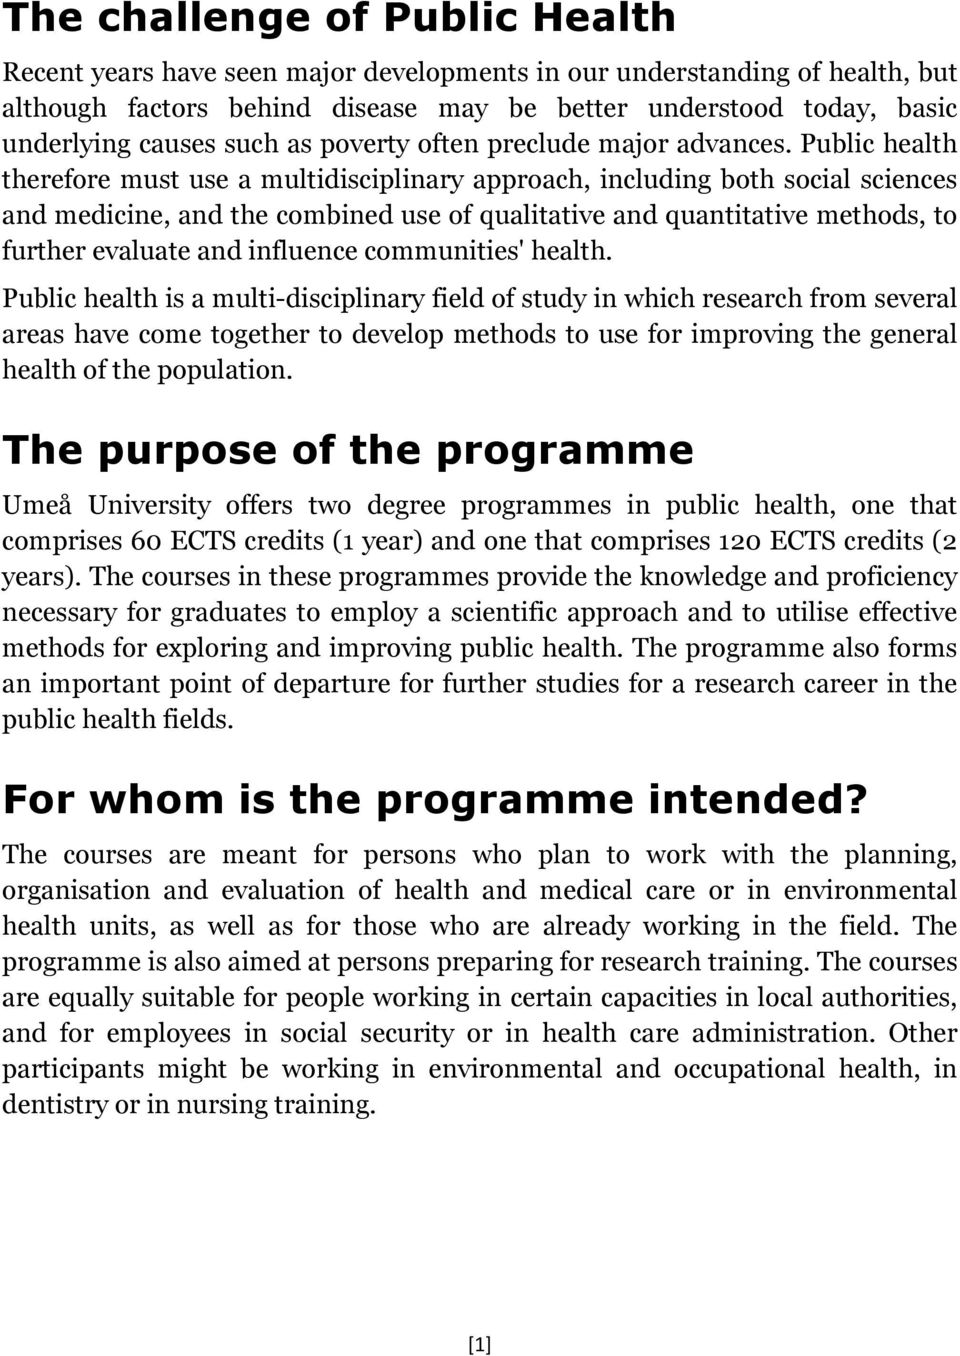 Public health therefore must use a multidisciplinary approach, including both social sciences and medicine, and the combined use of qualitative and quantitative methods, to further evaluate and